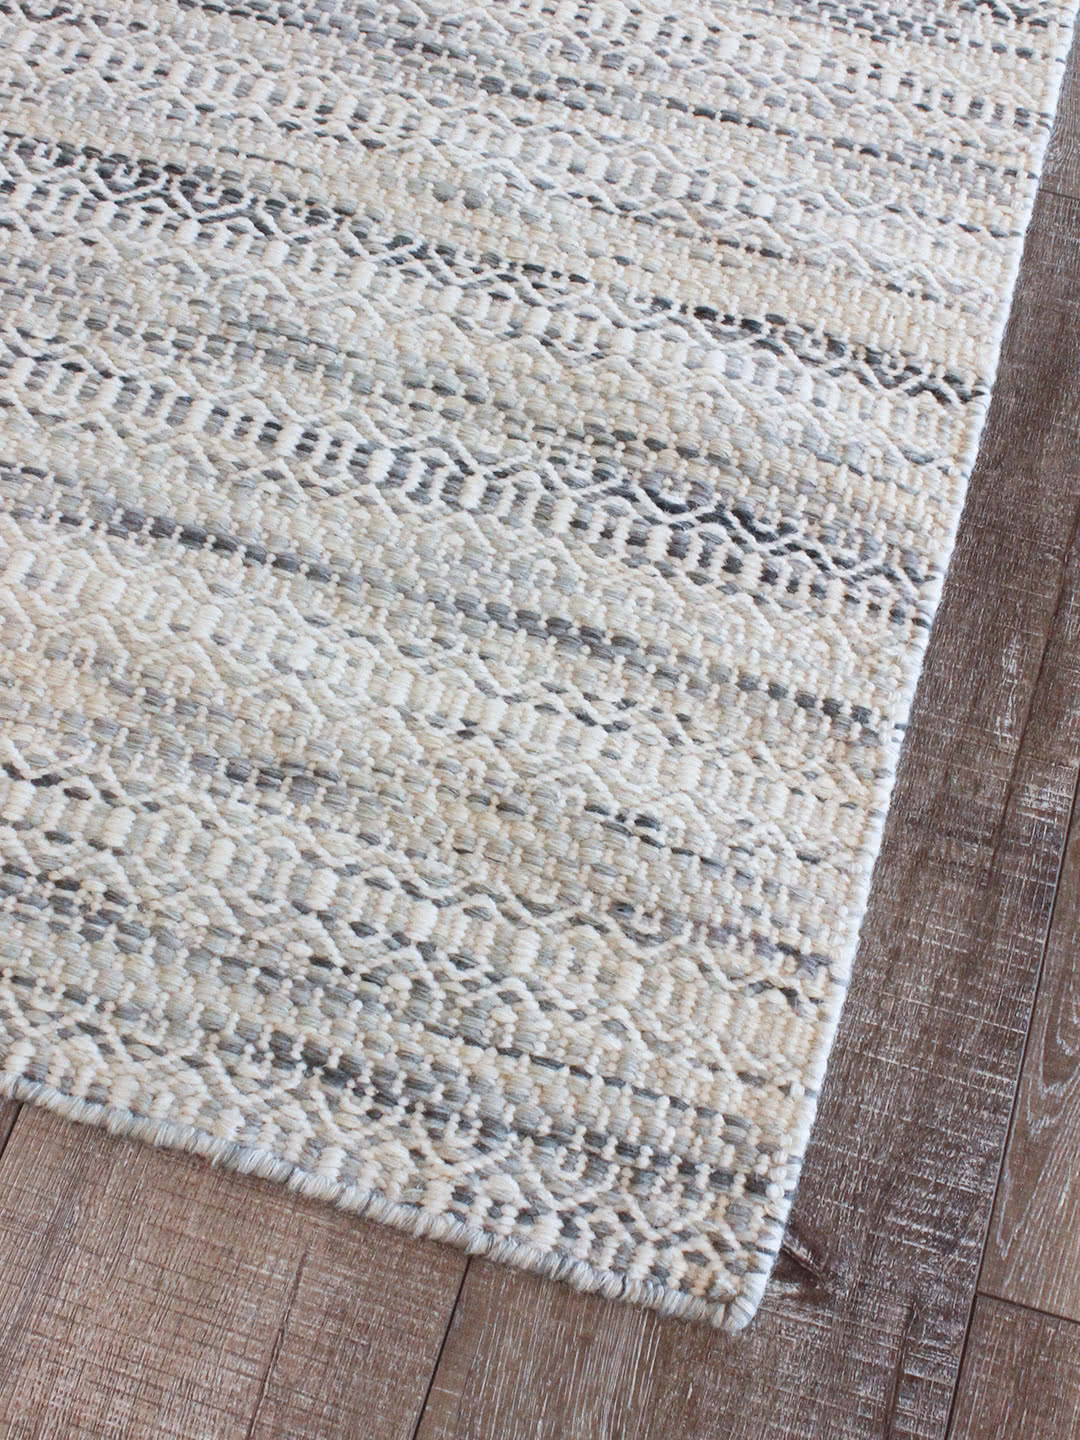 Tusk pure wool rugs Perth